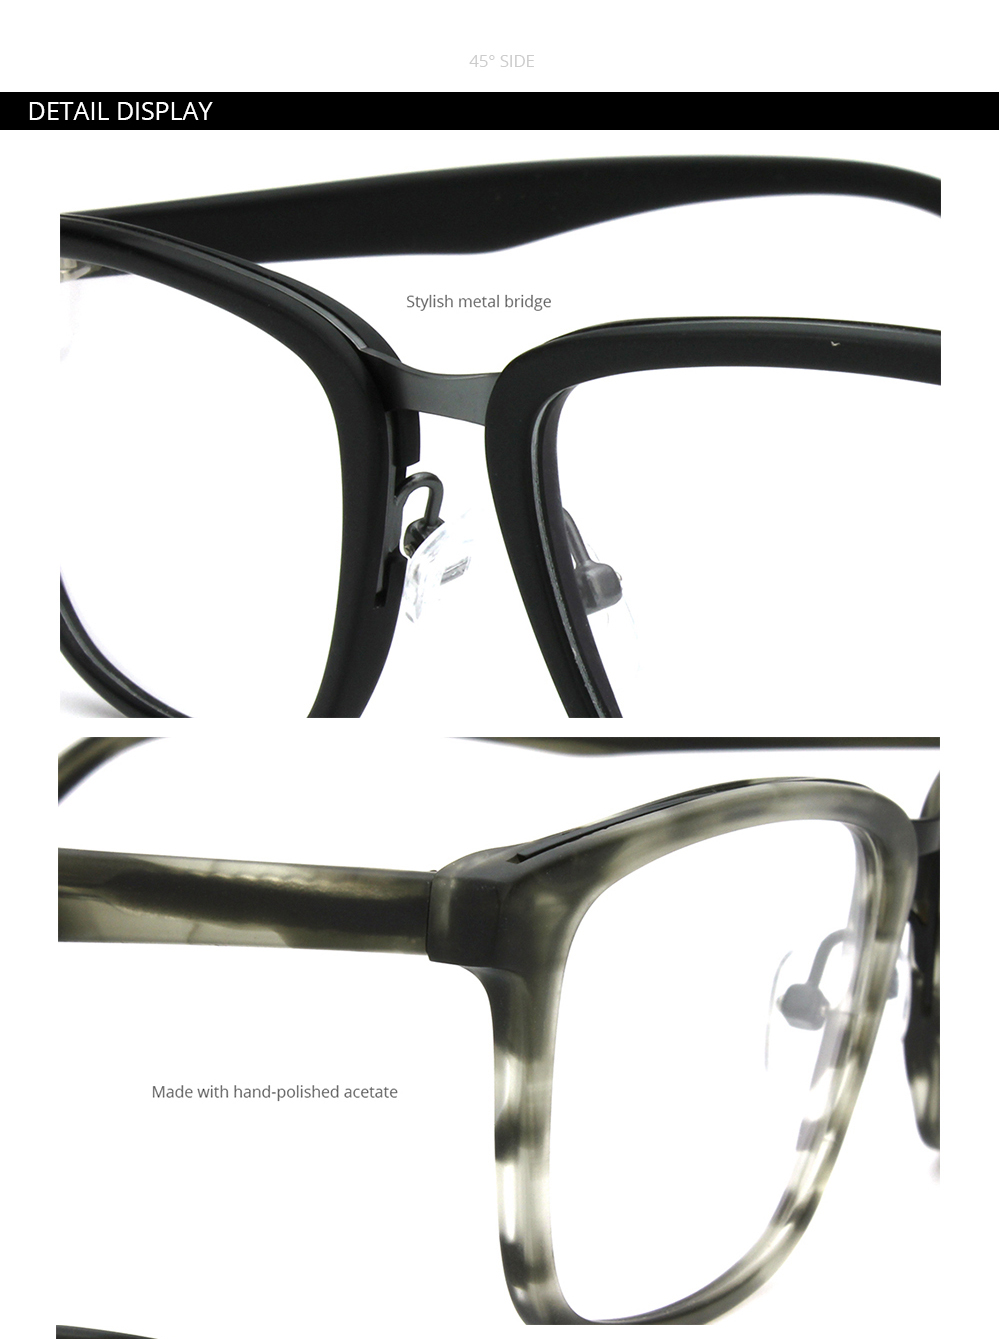 d7af0154b190 Mens Black RX Prescription Eye Glasses Frames For Women Vintage Metal  Bridge Optical Specs Frames Designer Square Eyewear BT2301